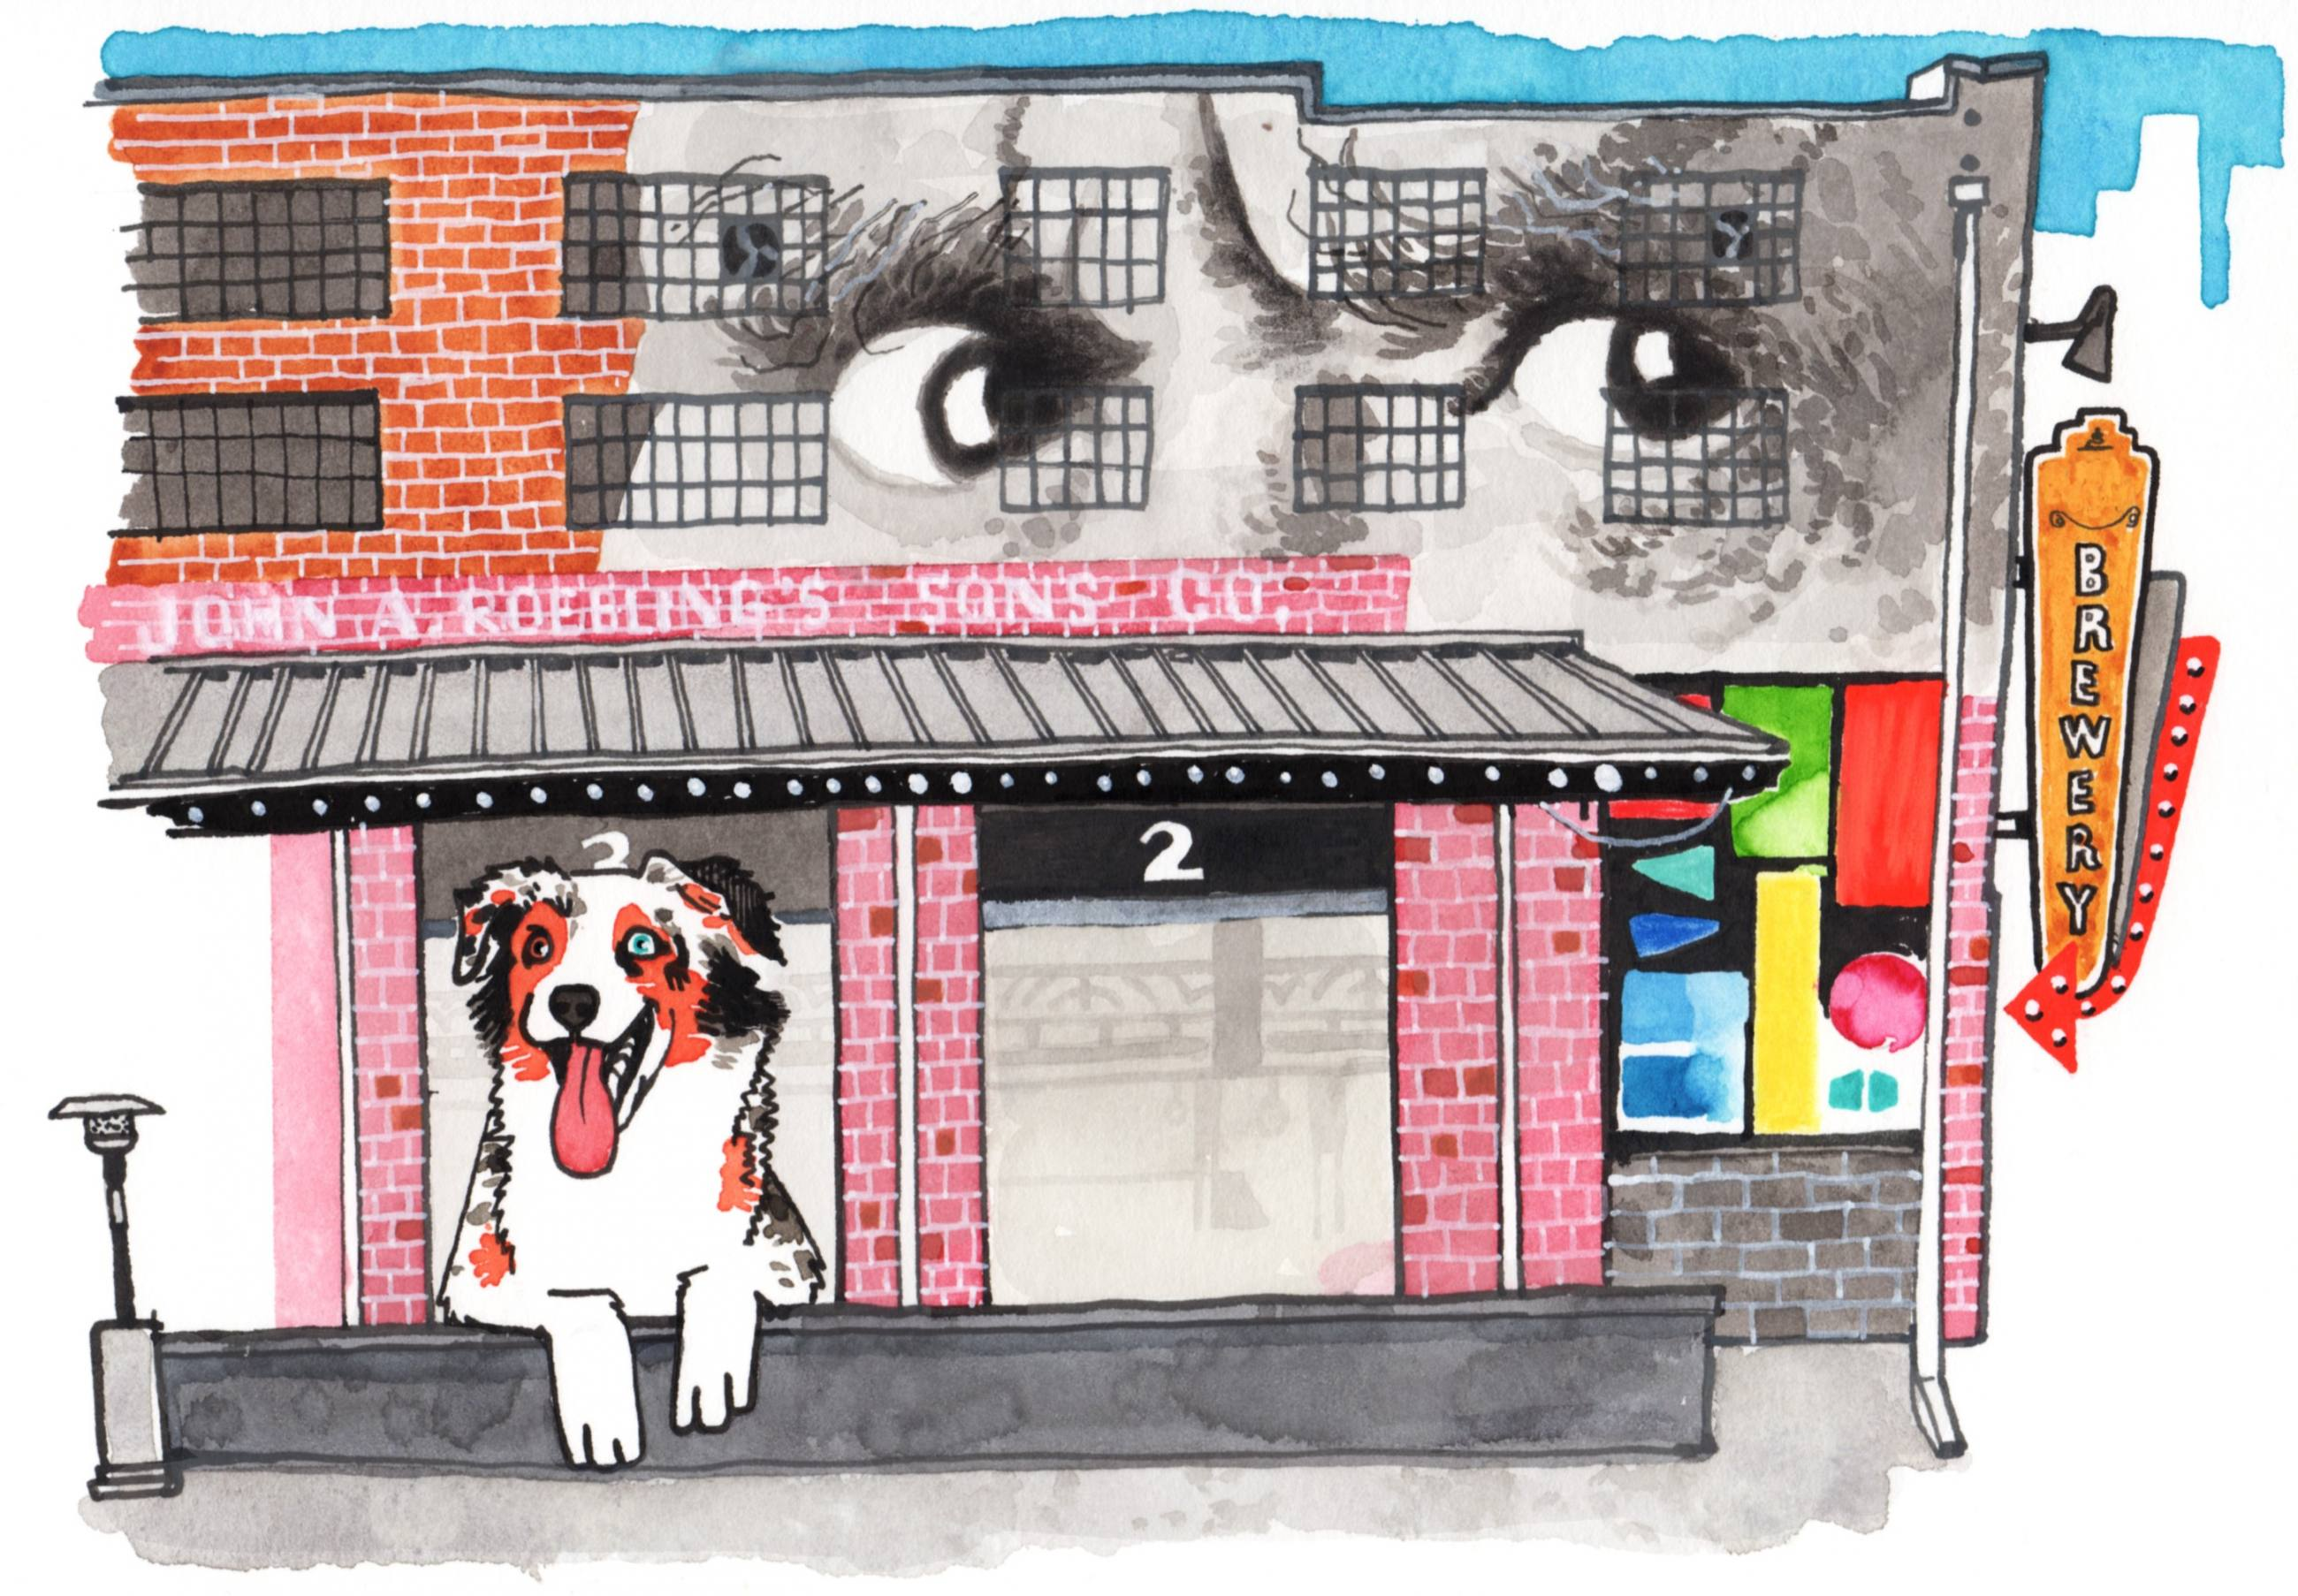 Australian Shepherd in the Arts District | Illustration by Max Kornell